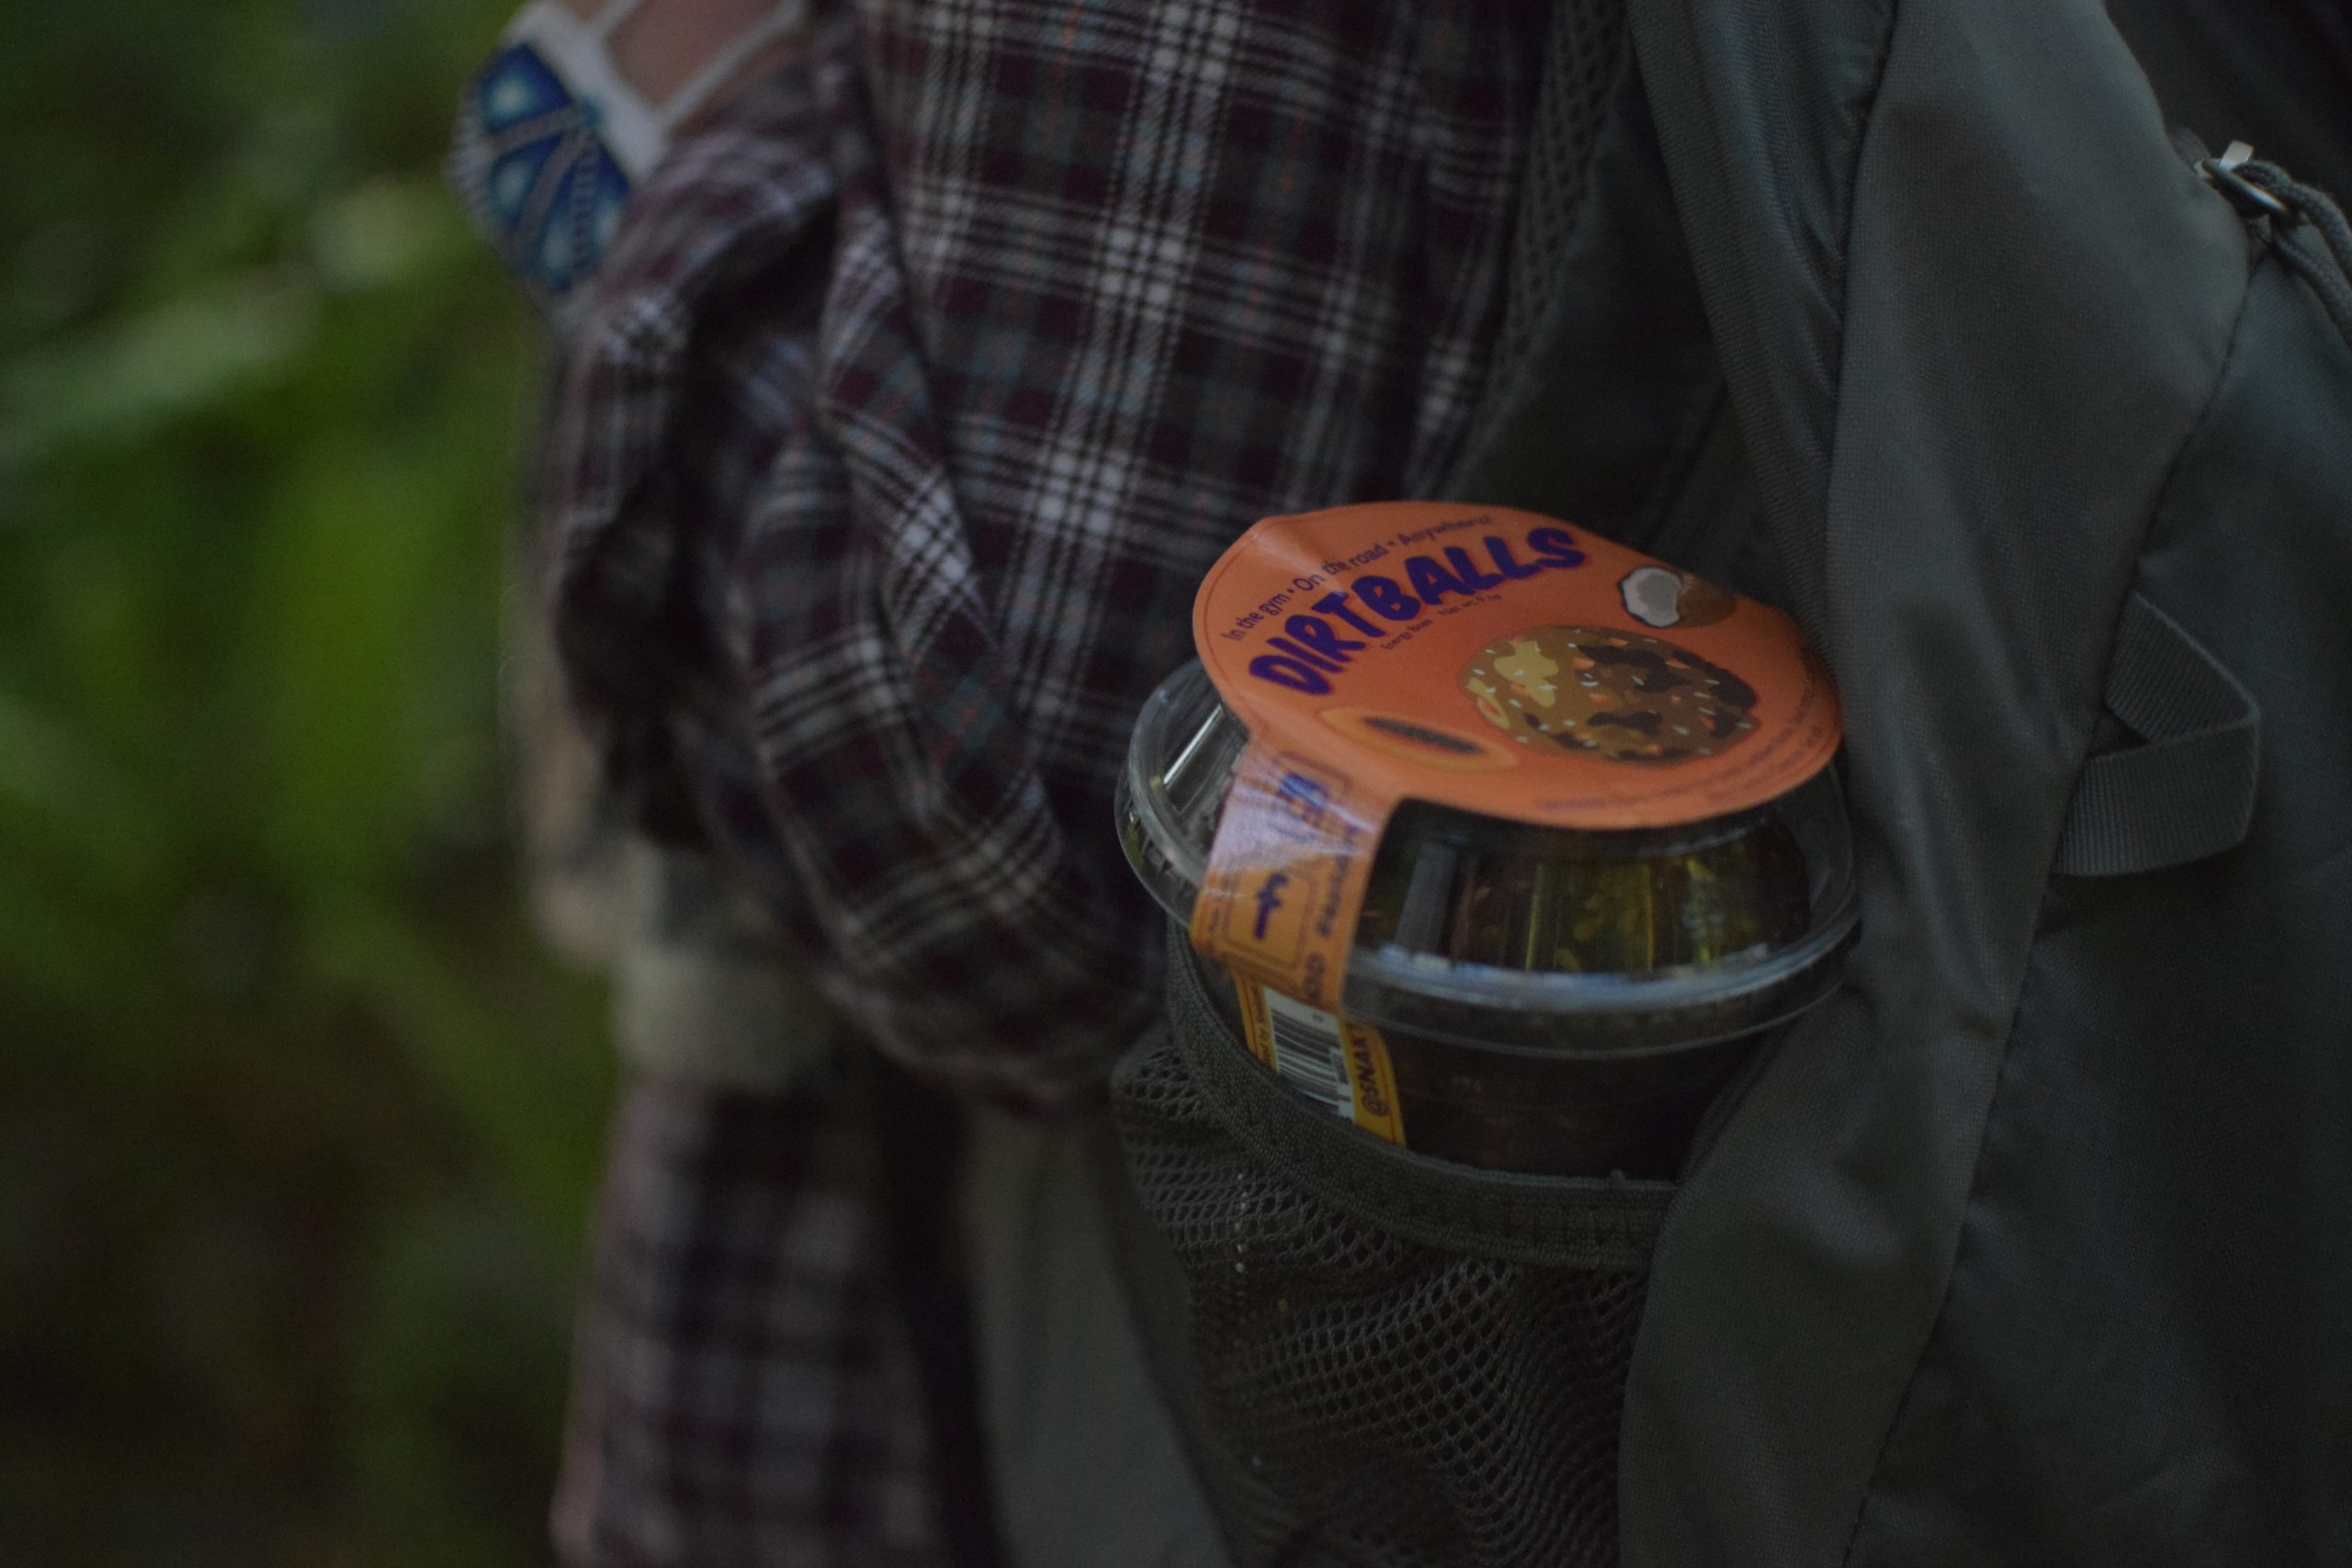 Dirtballs energy bites in a backpack pocket